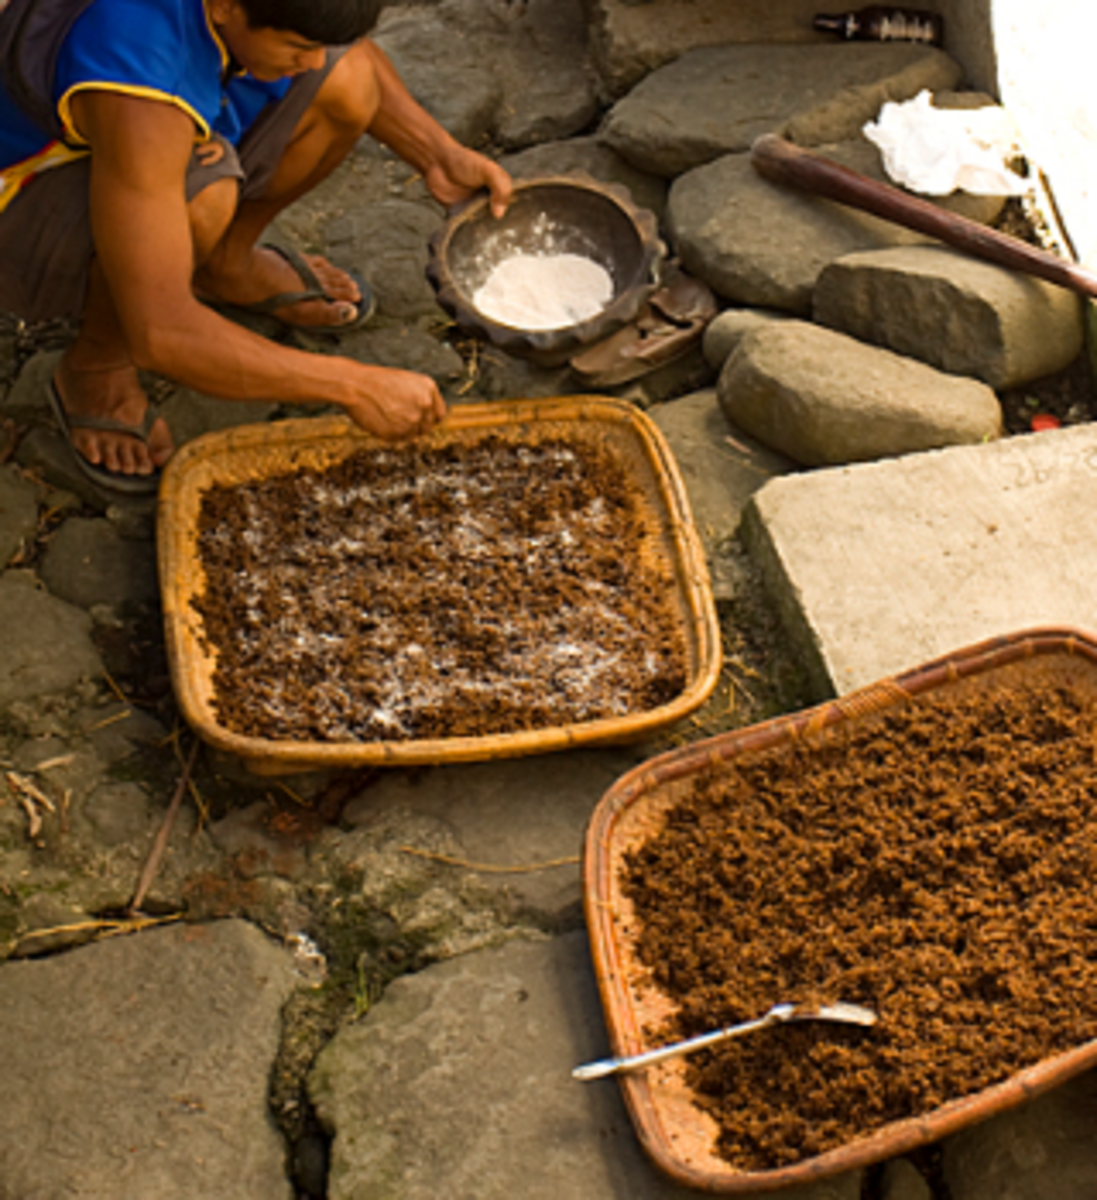 Apply the powdered bubod on cooked rice (Image Credit: AkosiSuperEdwinK from pinoyphotography.org)